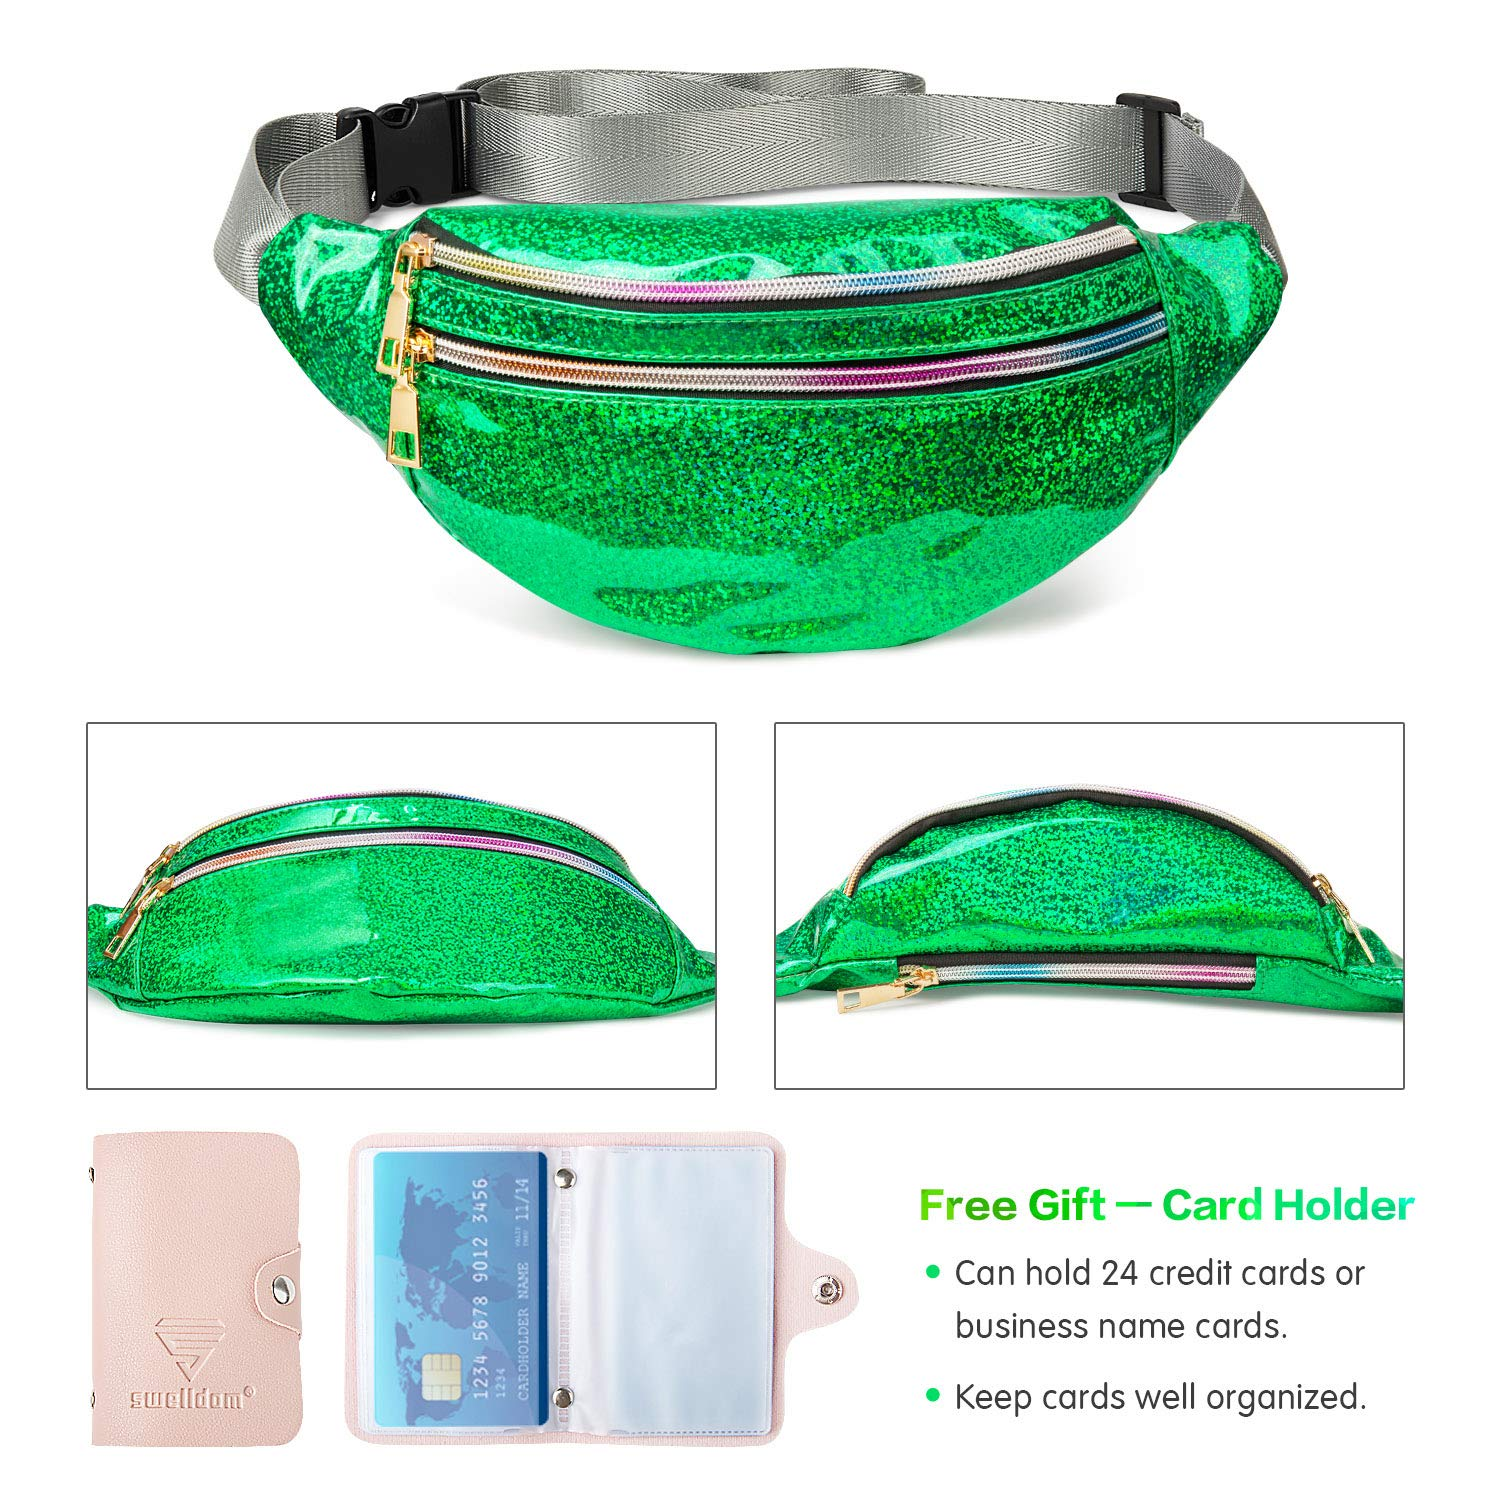 Fashion Waterproof Waist Pack with 3 Pouches Adjustable Strap Holographic Fanny Packs for Women Men Kids Shiny Causal Bags Cute Bum Bag Hip Sacks for Travel Festival Hiking Rave Fanny Pack Belt Bag